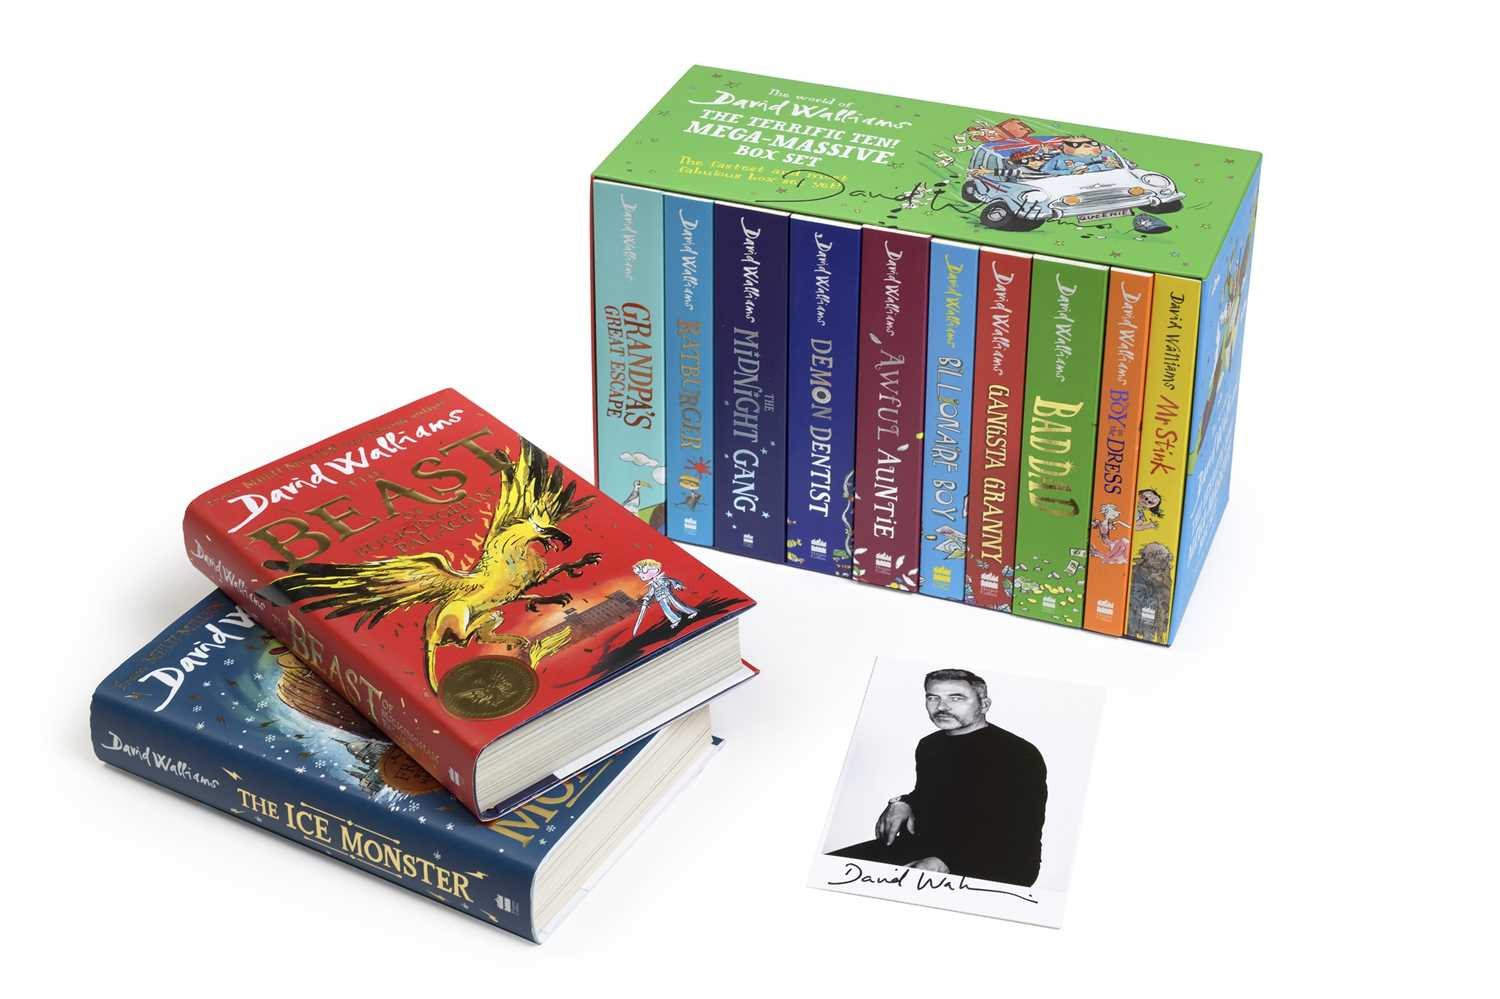 Signed David Walliams OBE Book Collection Each book in this collection is signed by the critically